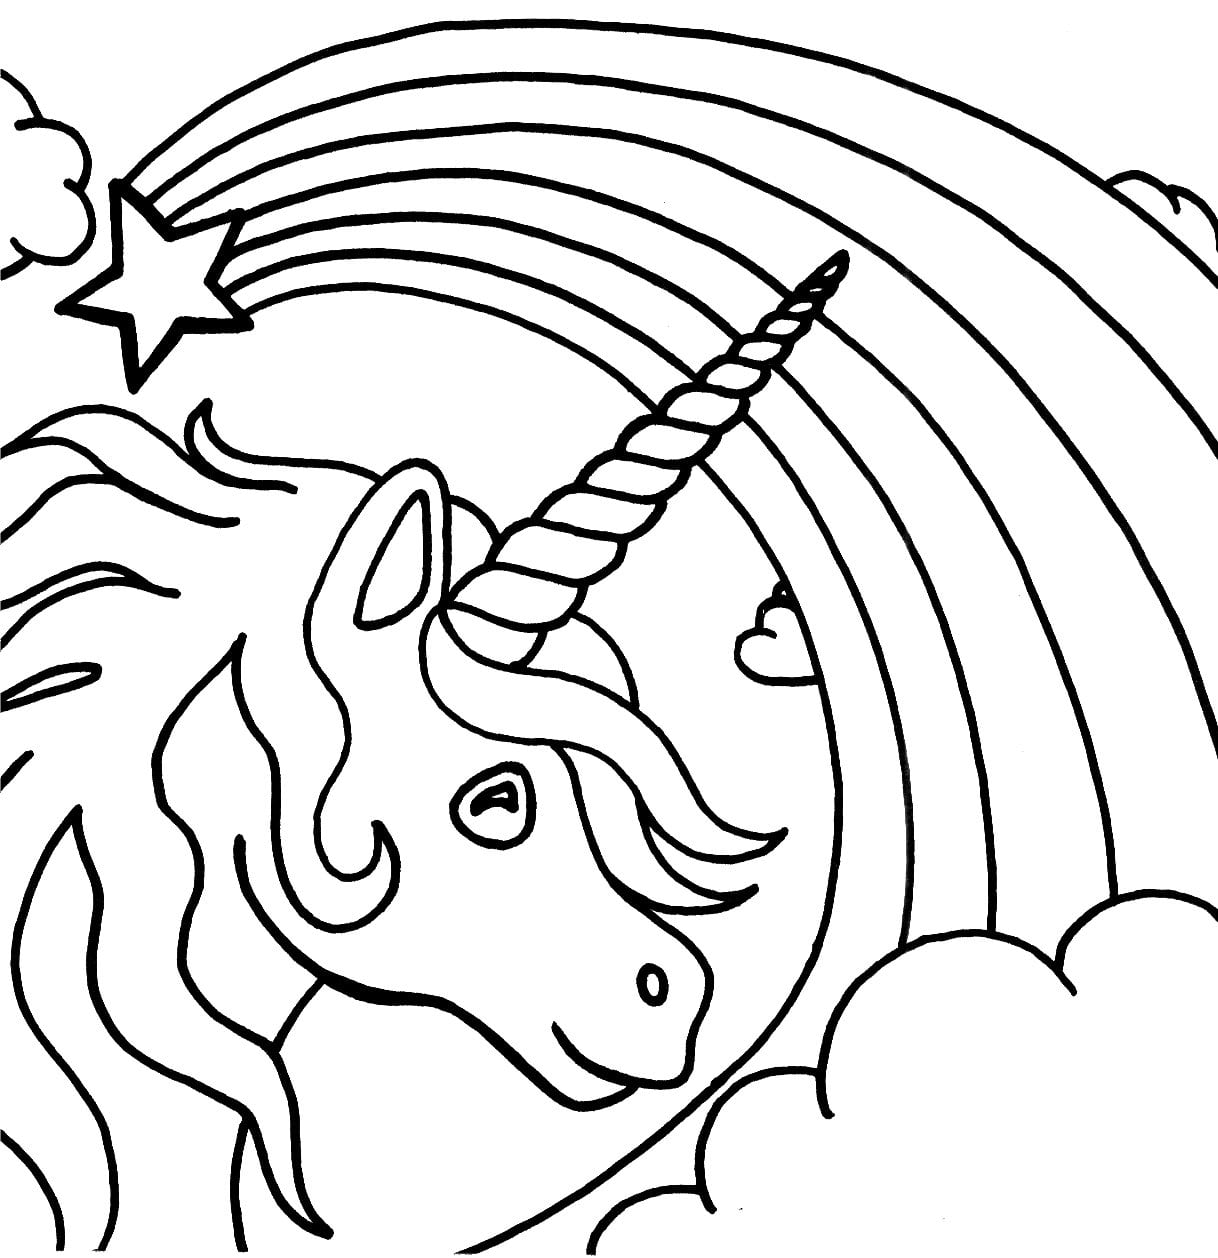 Rainbows Colouring Pages, Rainbow Color Pages